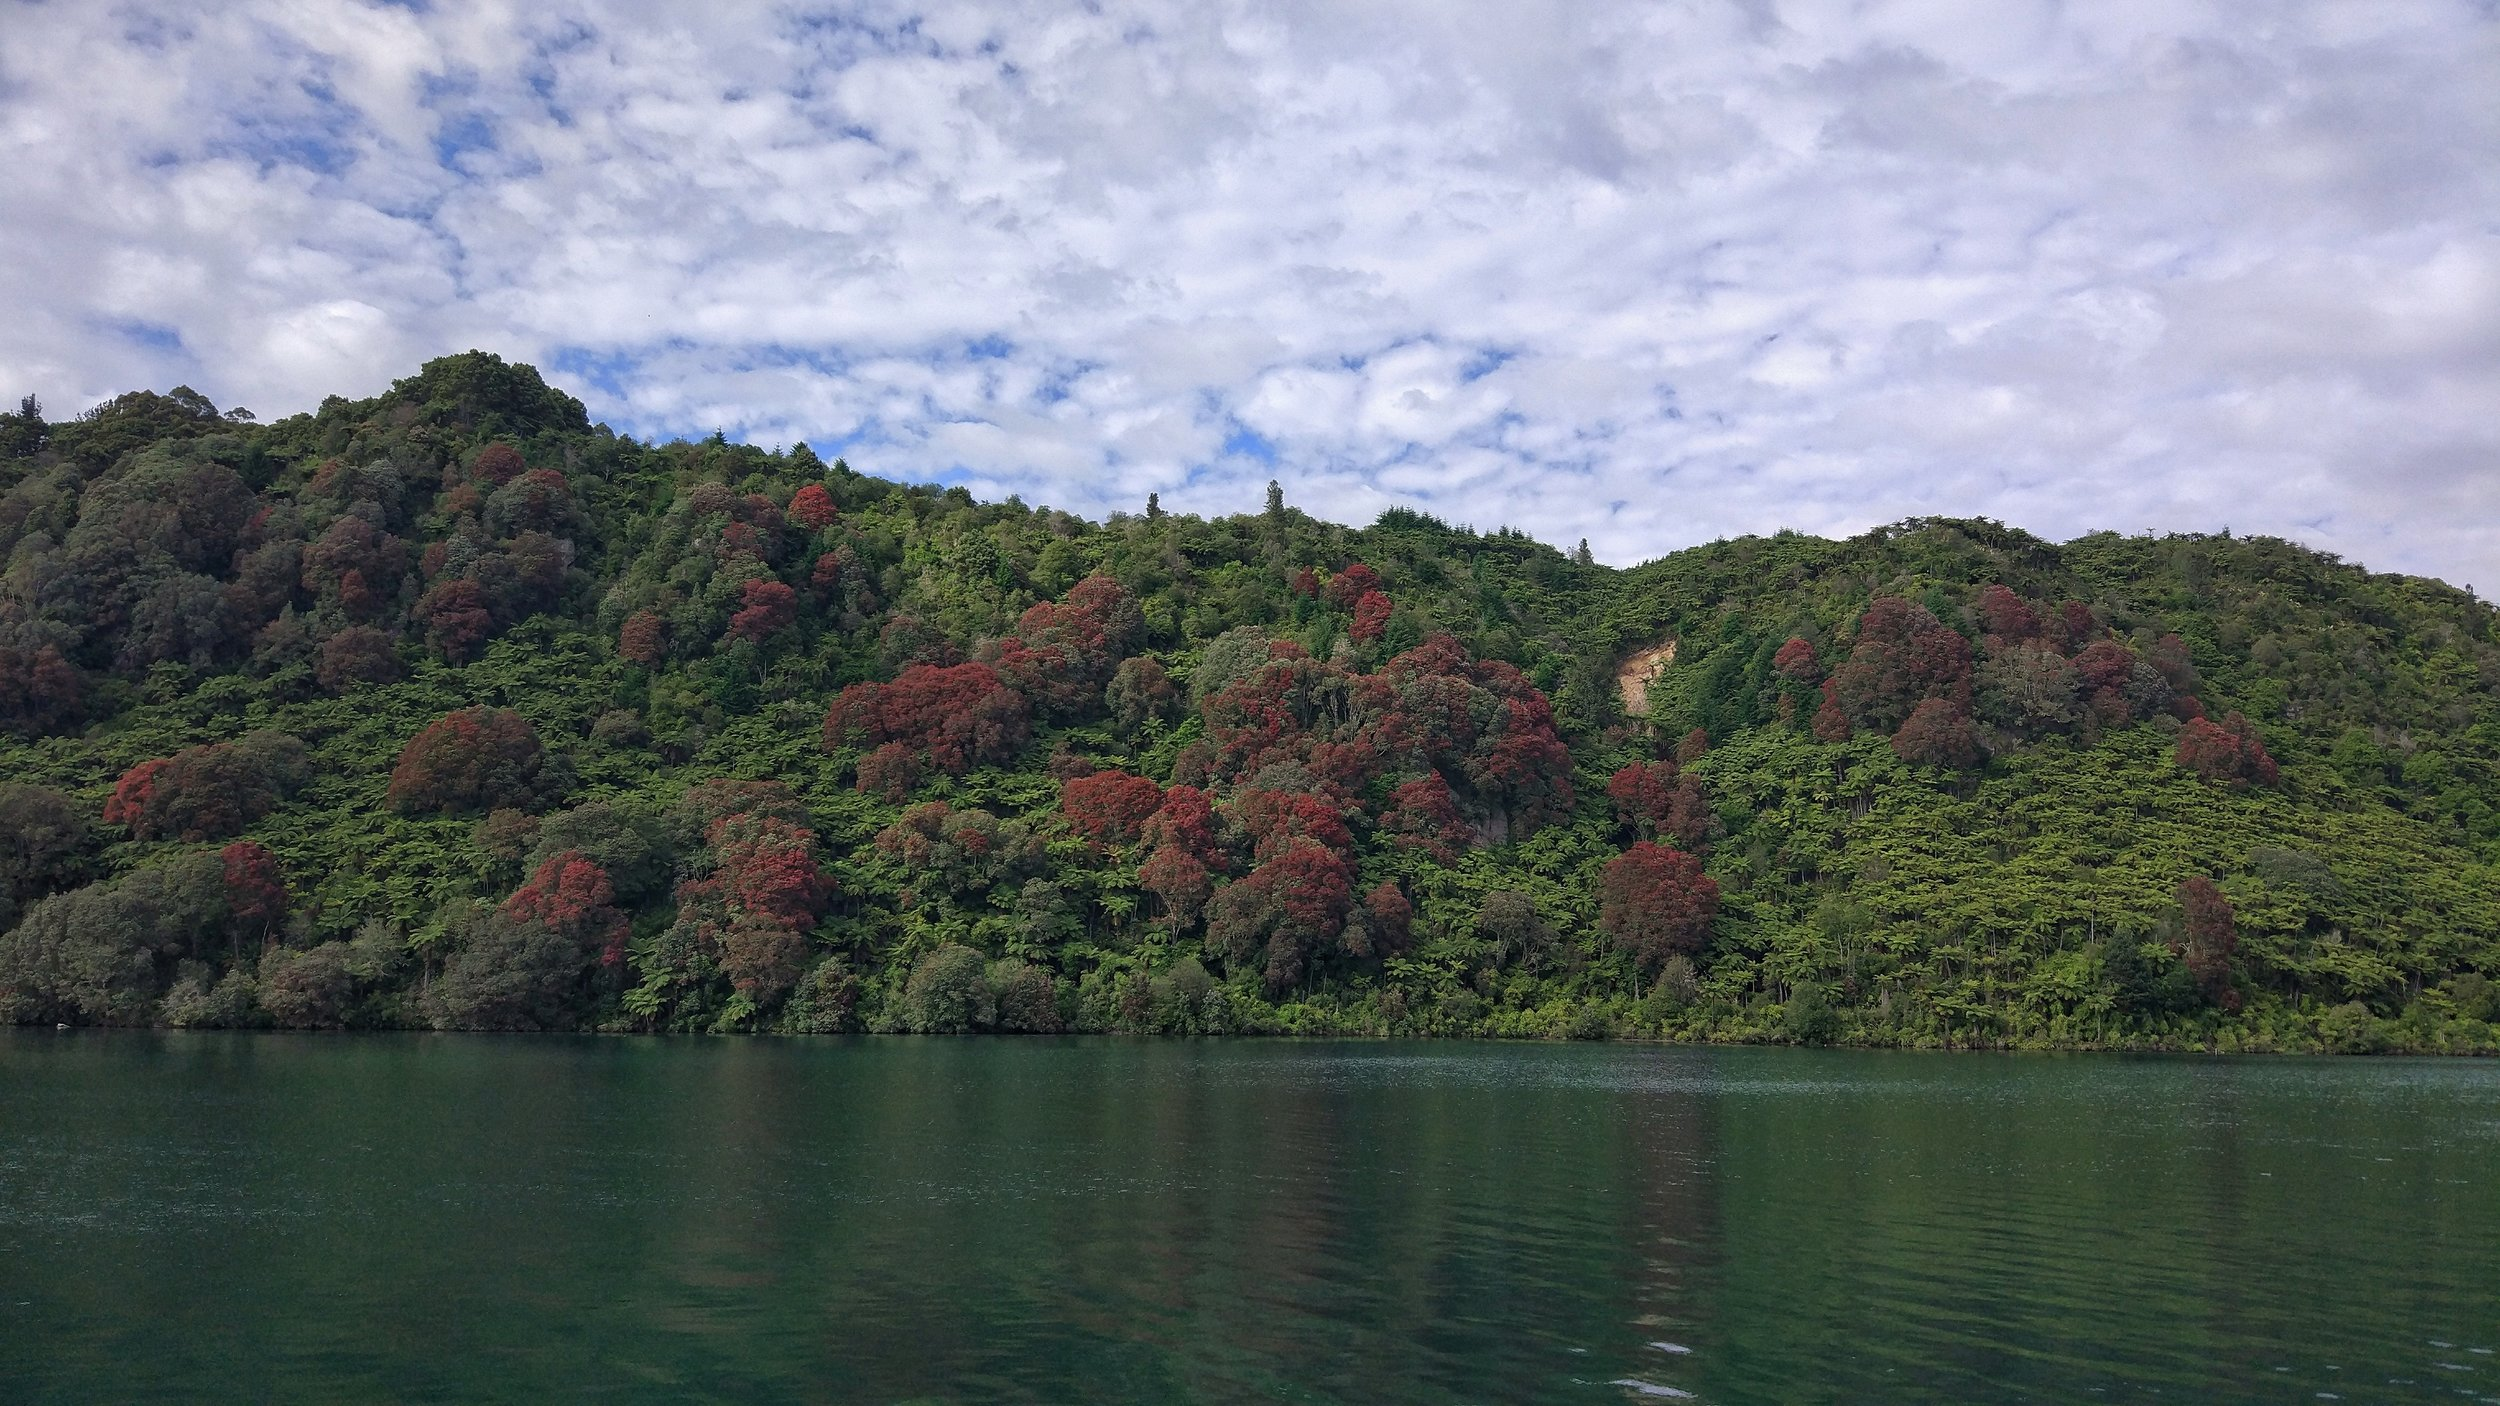 Blooming pohutukawa trees and fern…very new zealand landscape